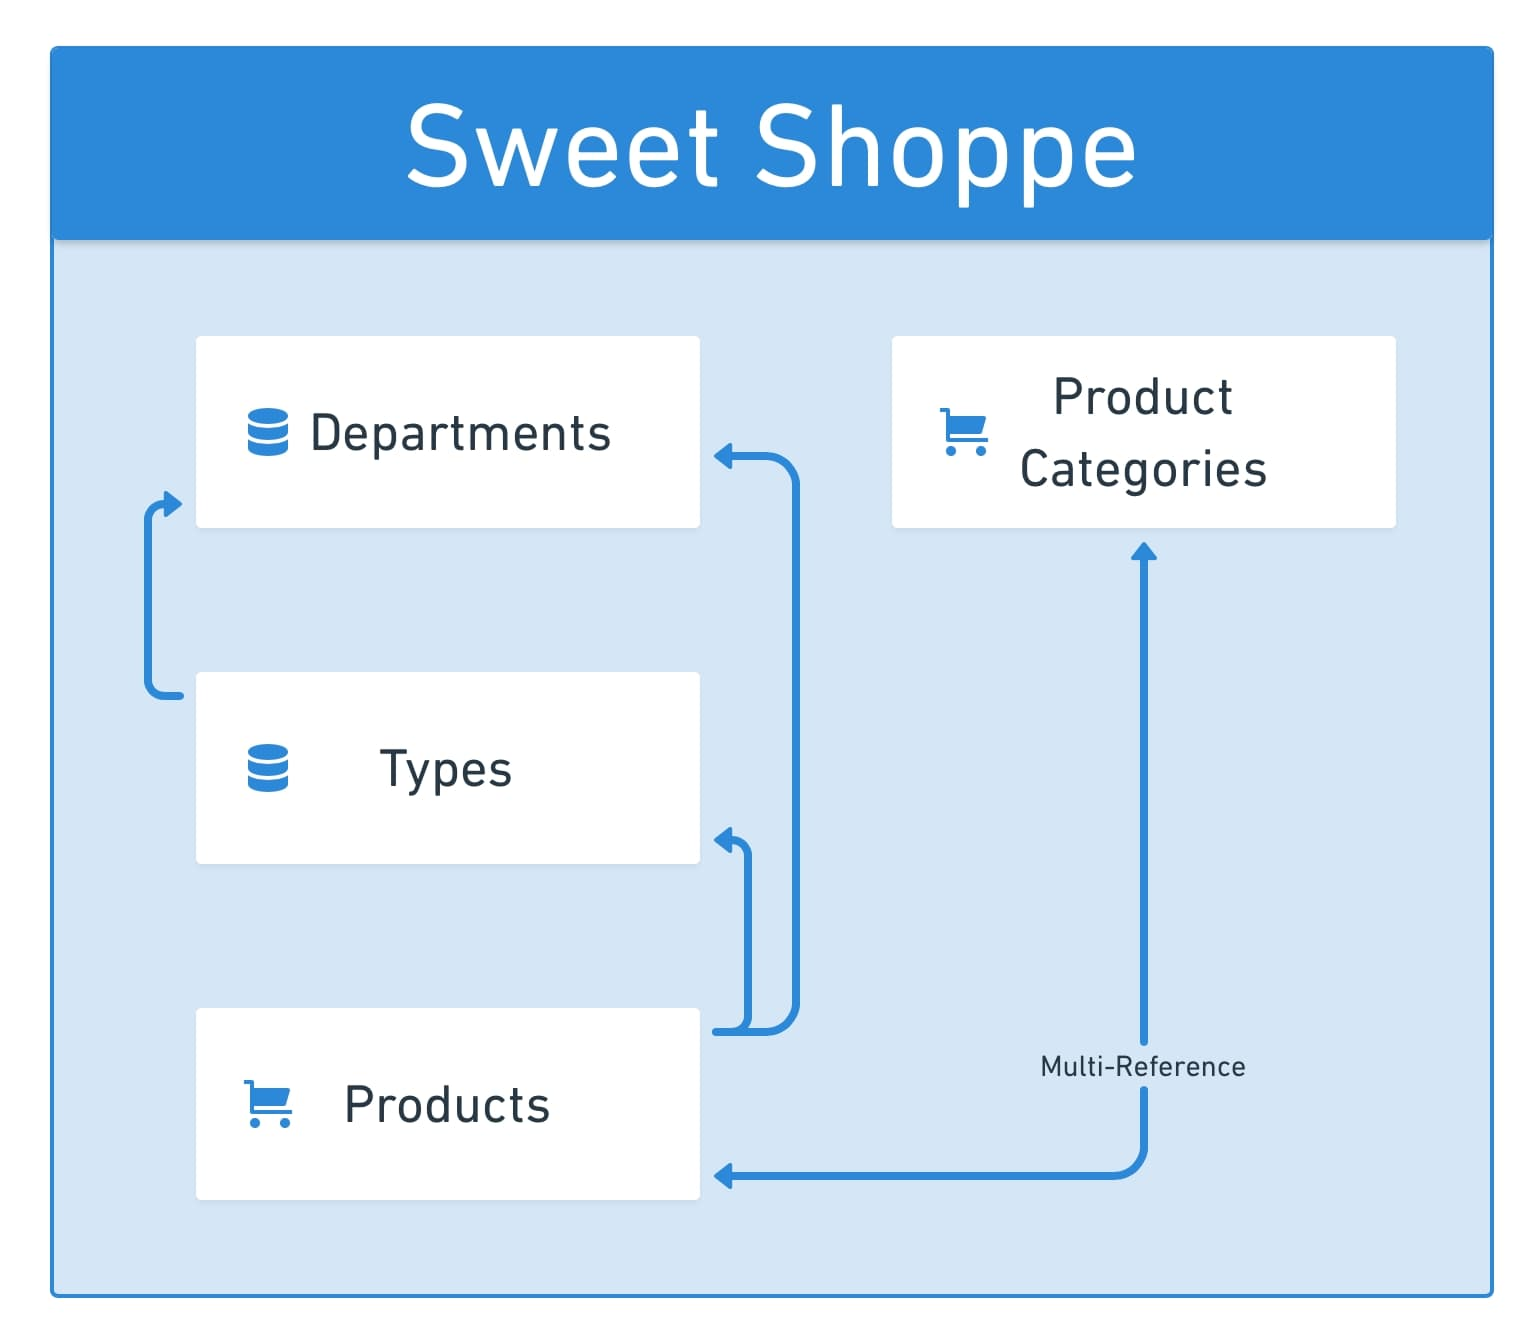 Sweet Shoppe Collection flowchart with Departments, Types, Products, and Product Categories. Product categories flow to and from Products. Products flow to Types and Departments. Types flow to Departments.